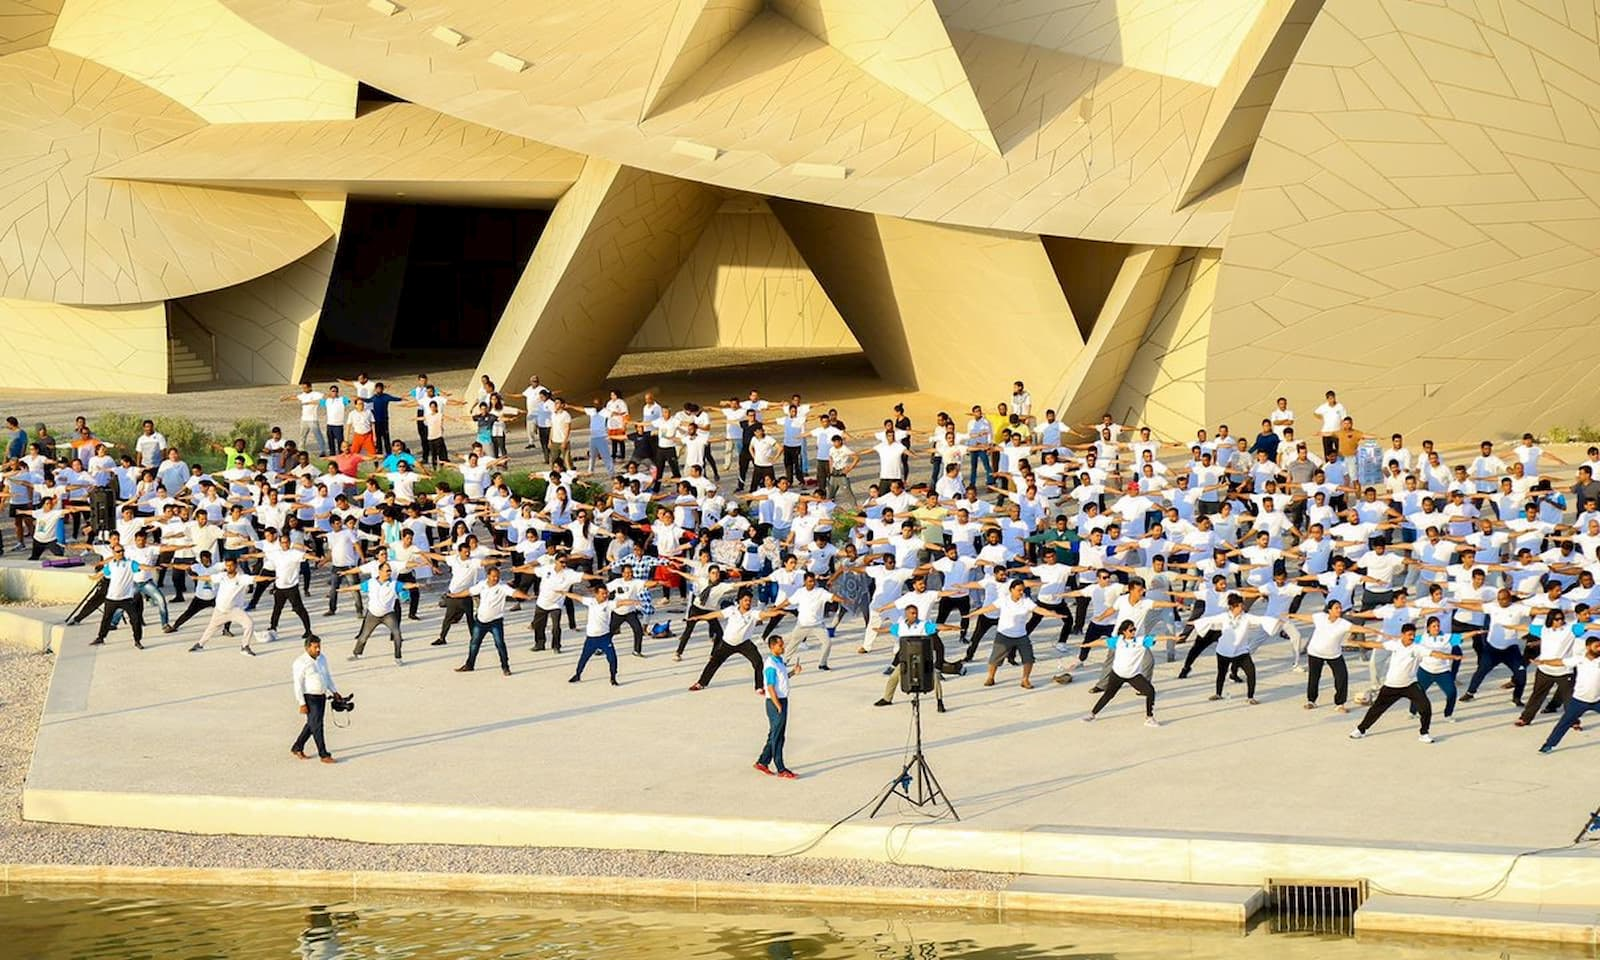 This is an image of Indians in Qatar celebrating International Day of Yoga 2019